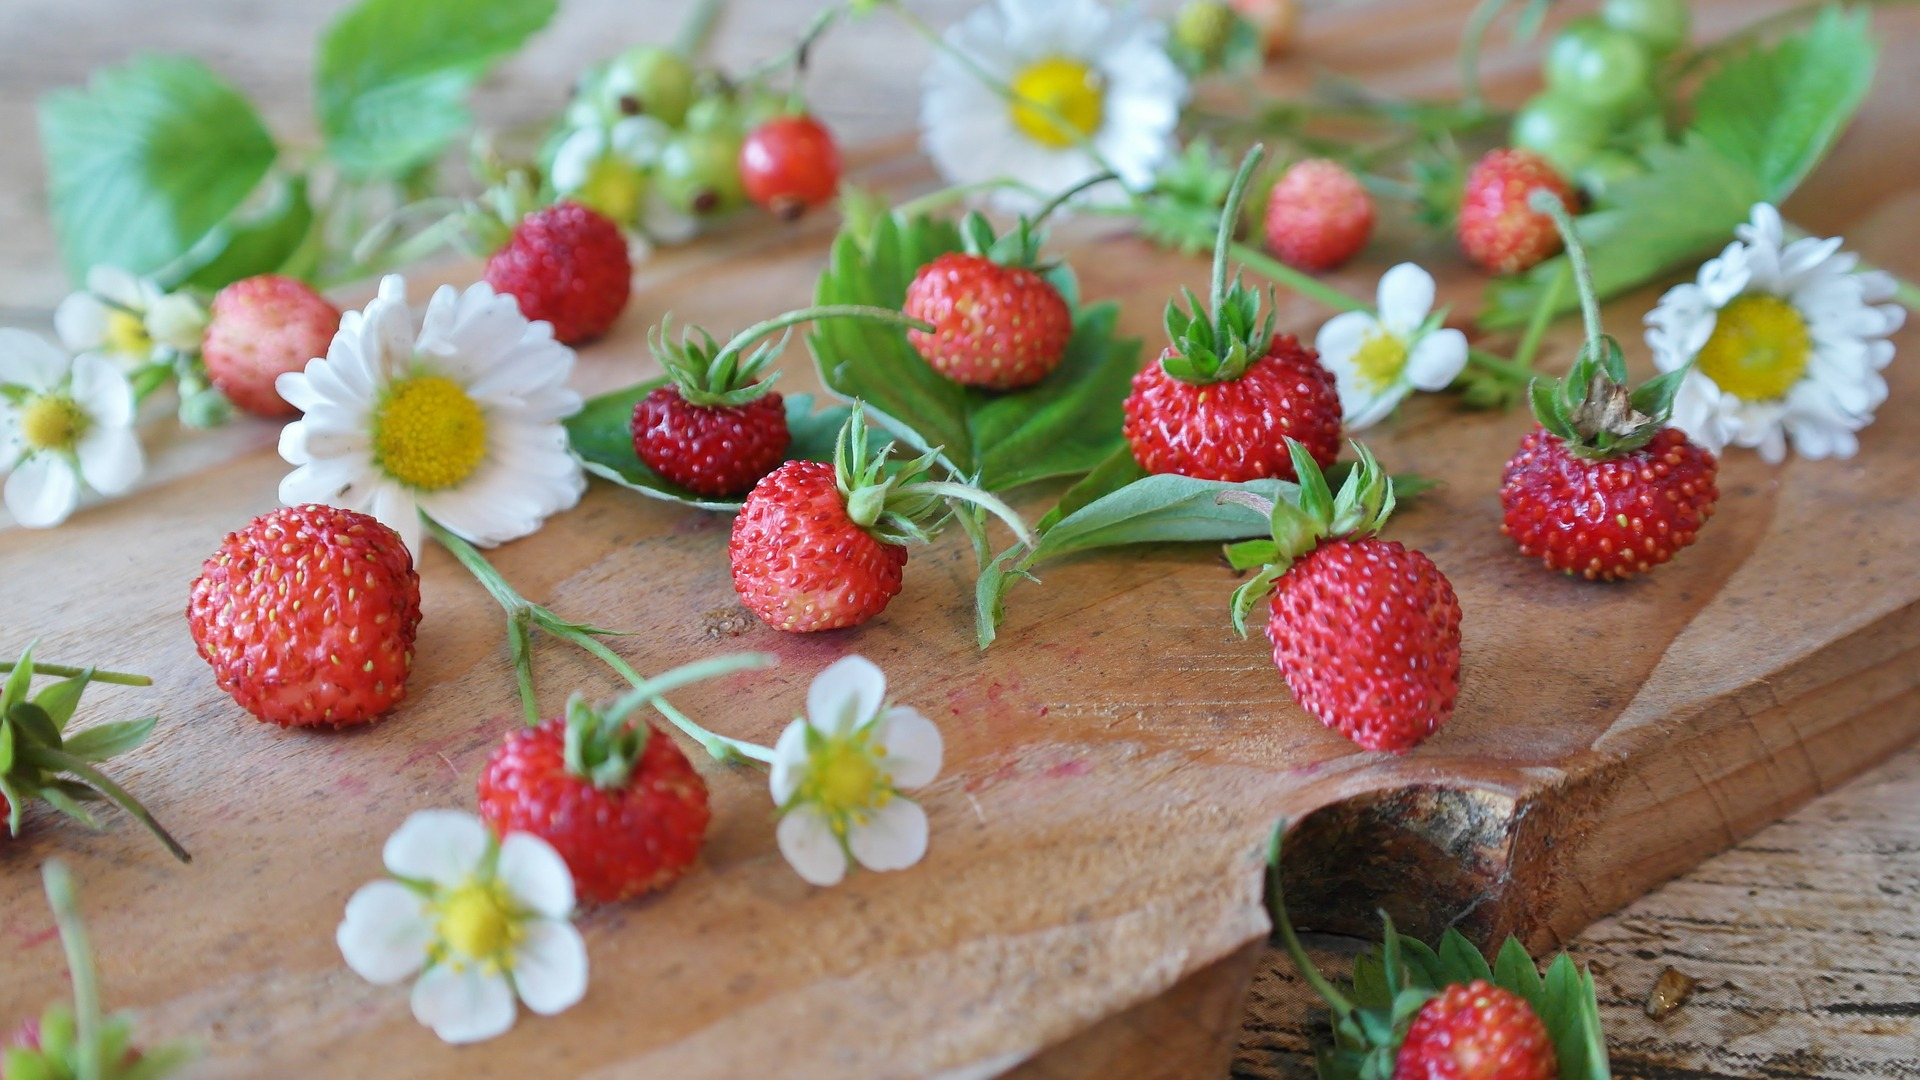 Strawberries are a favorite summer fruit. Yet store-bought berries can't come near the intense and fresh flavor of those picked right off the vine from your very own garden.